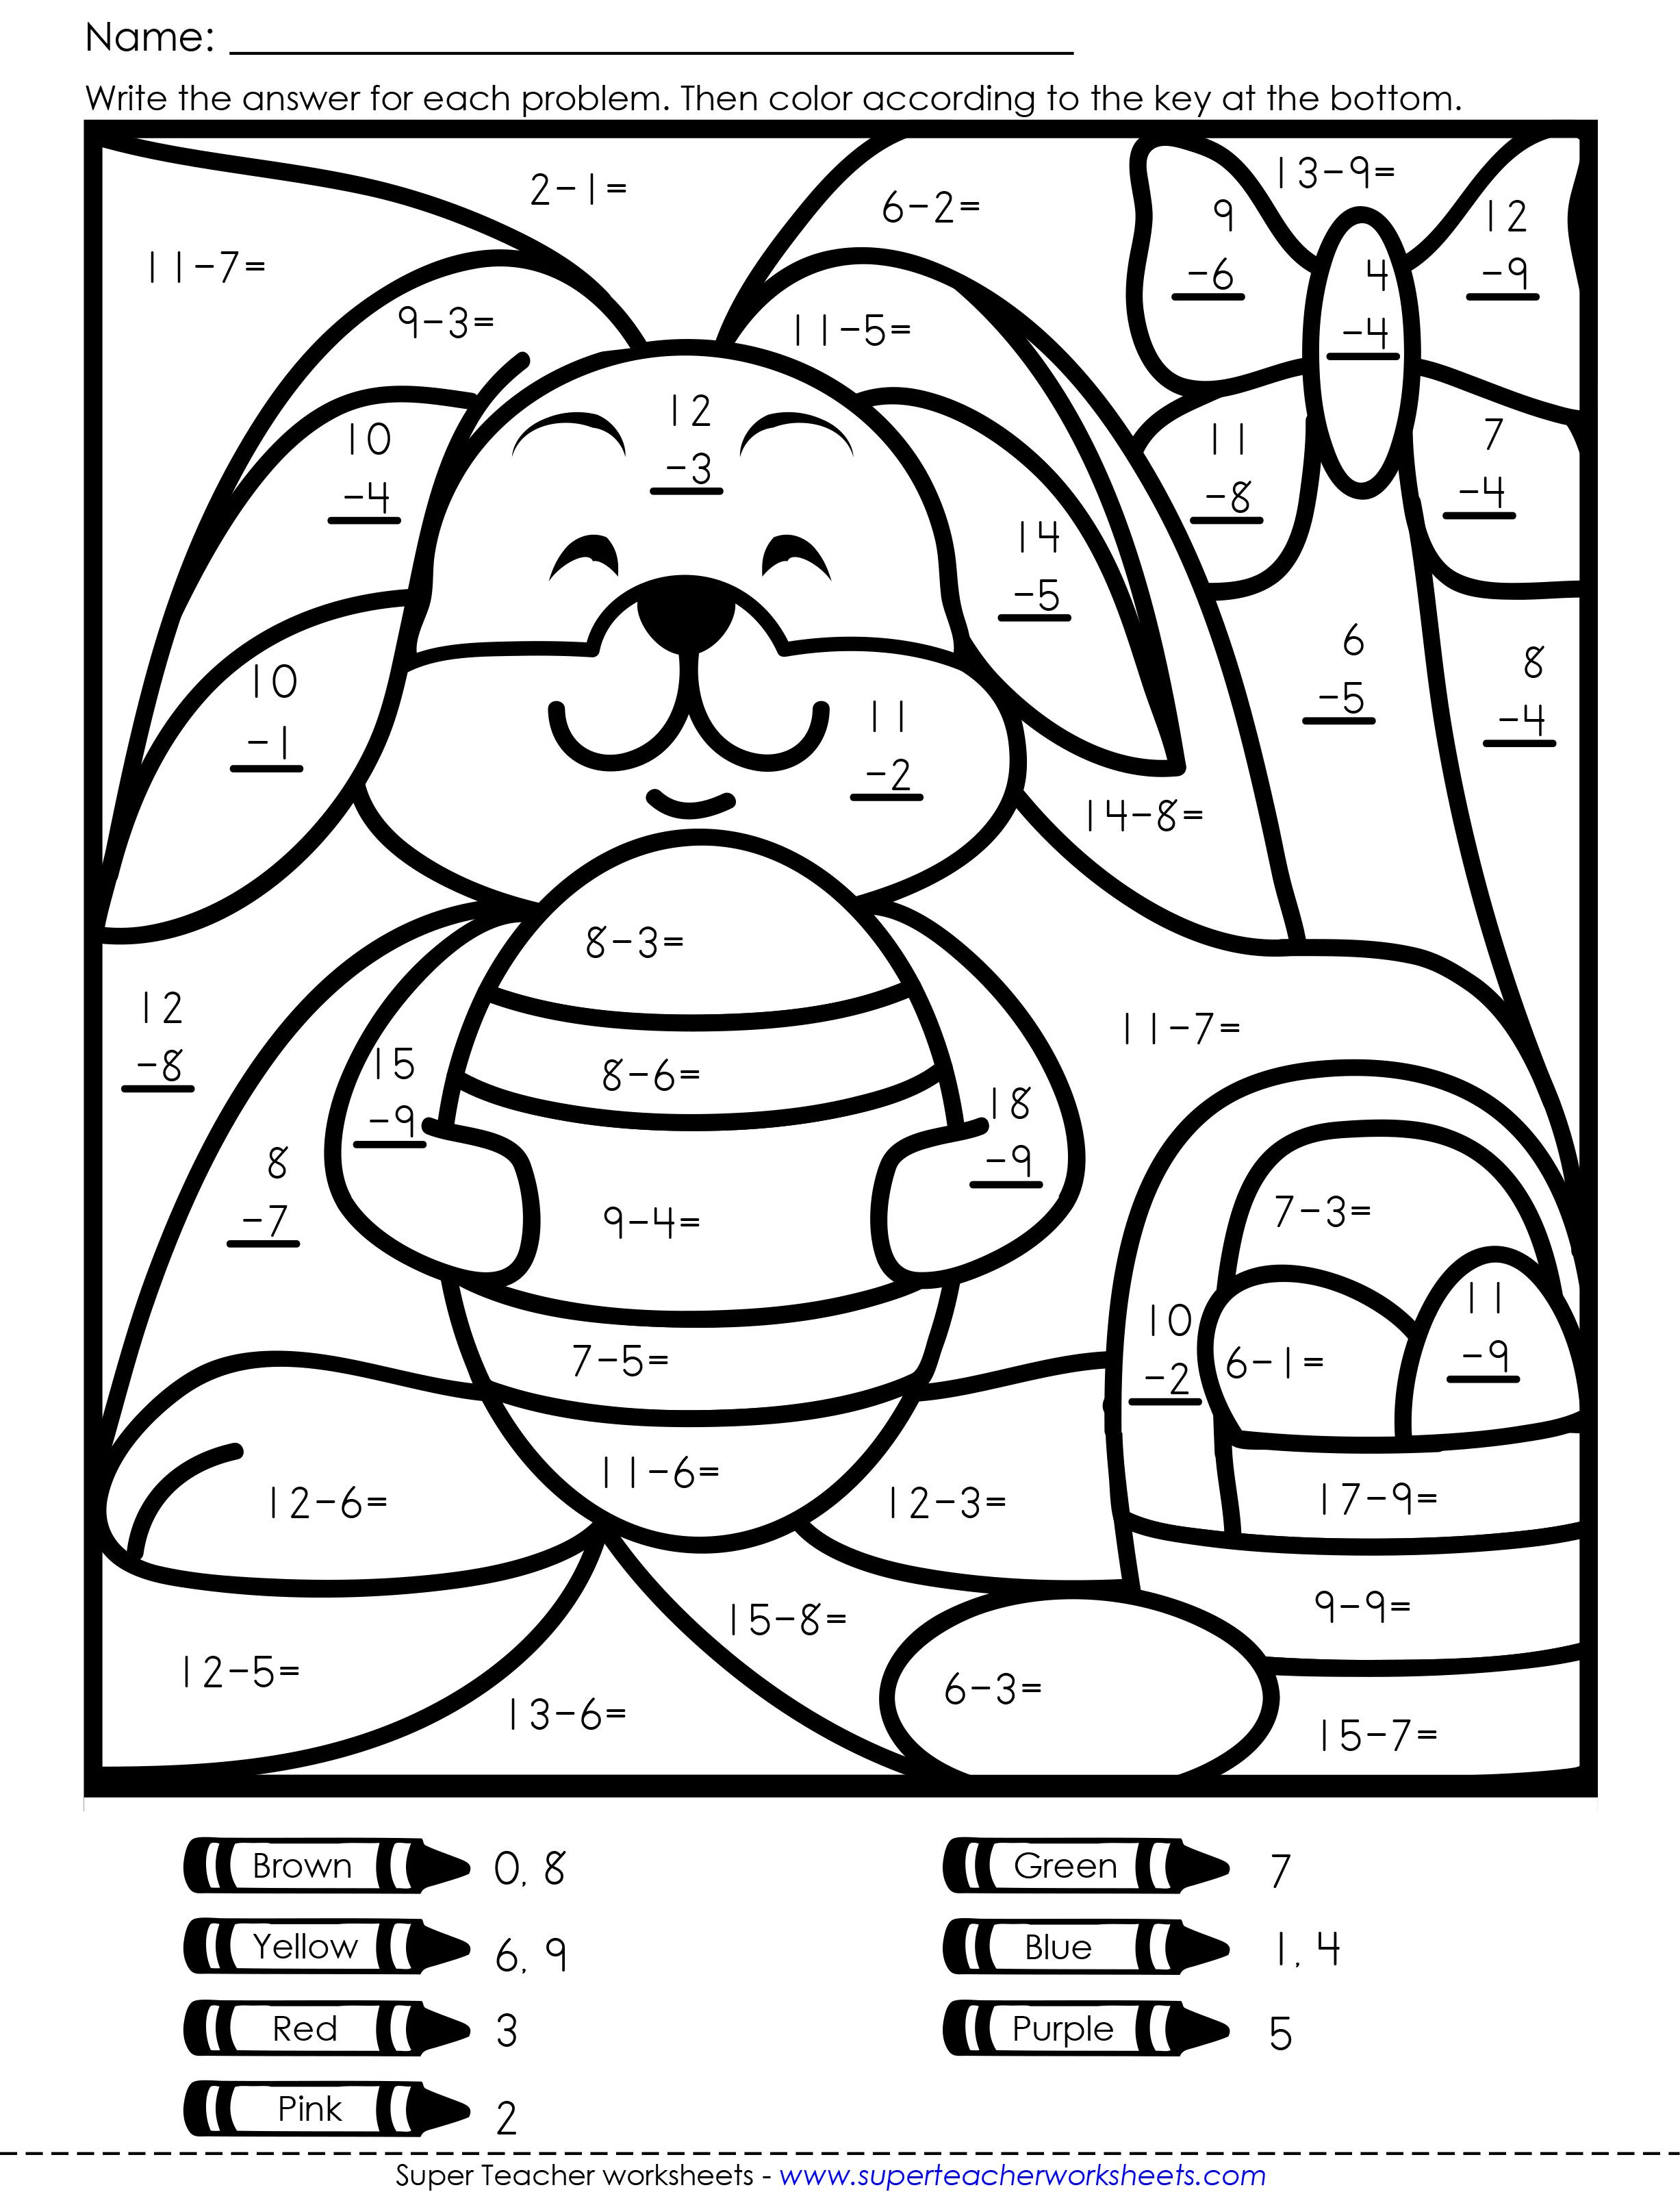 Colouring in maths game Easter worksheets, Math